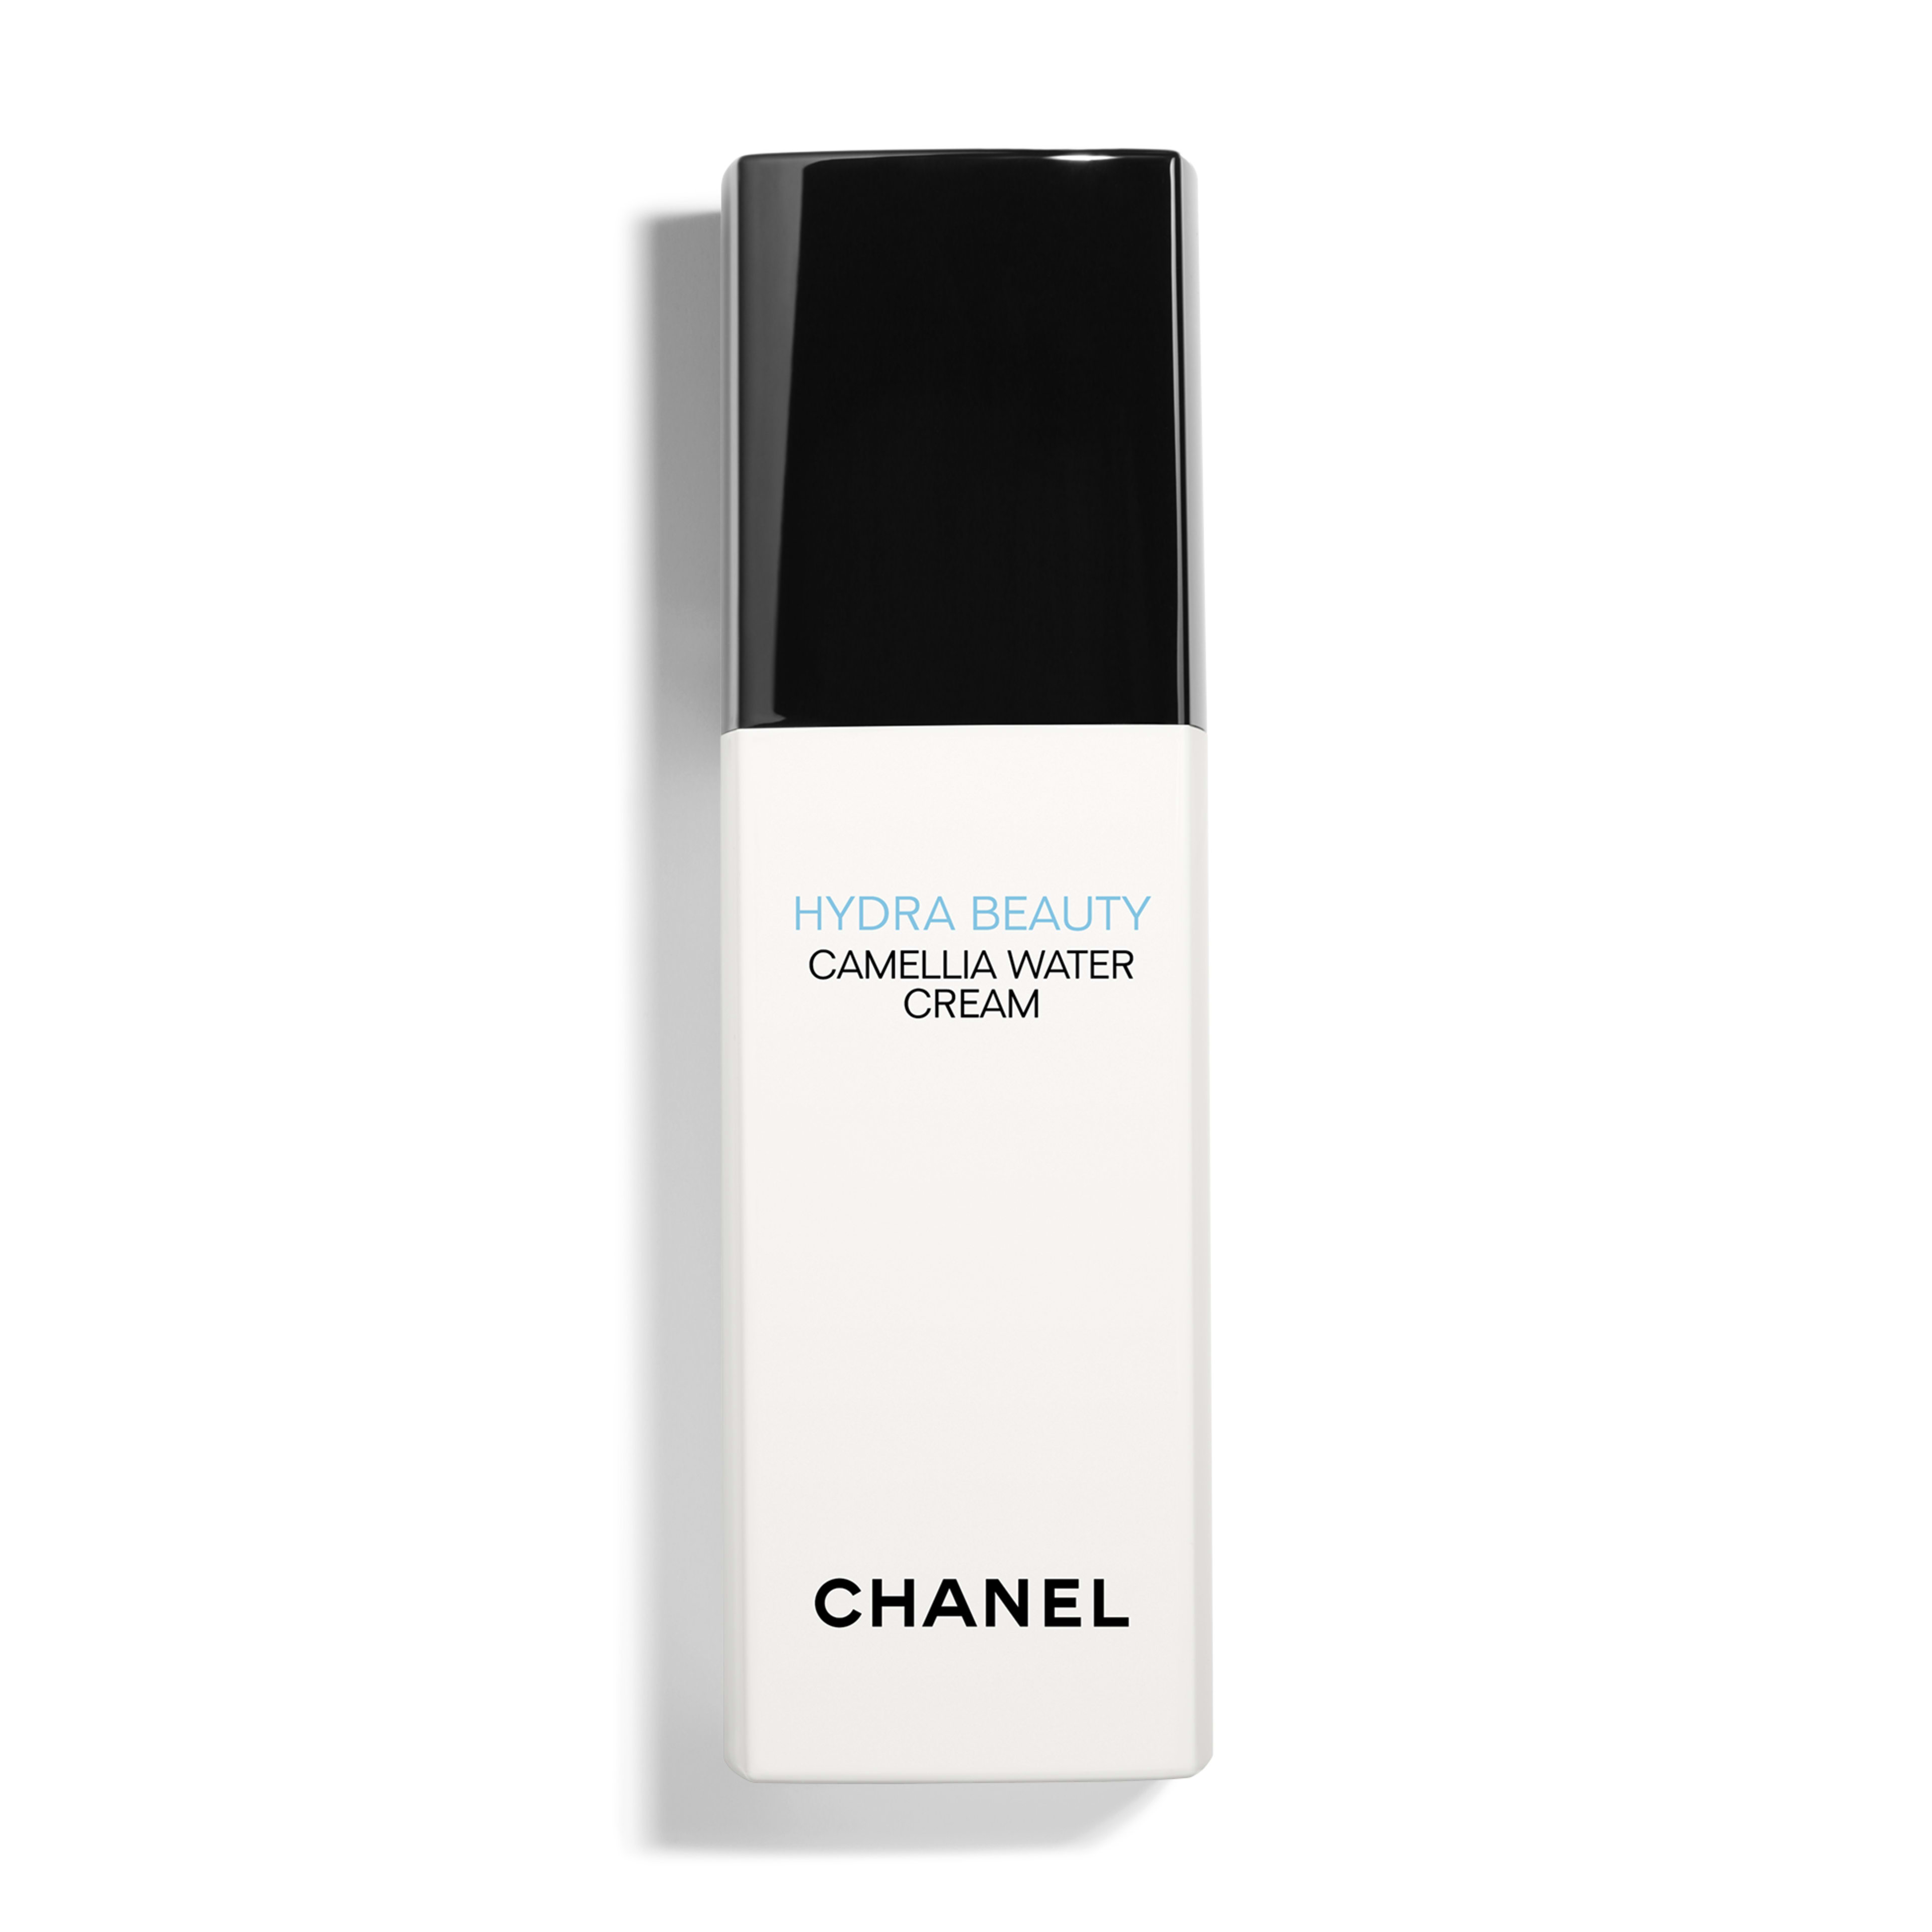 chanel-hydra-beauty-camellia-water-cream-jpg.jpg